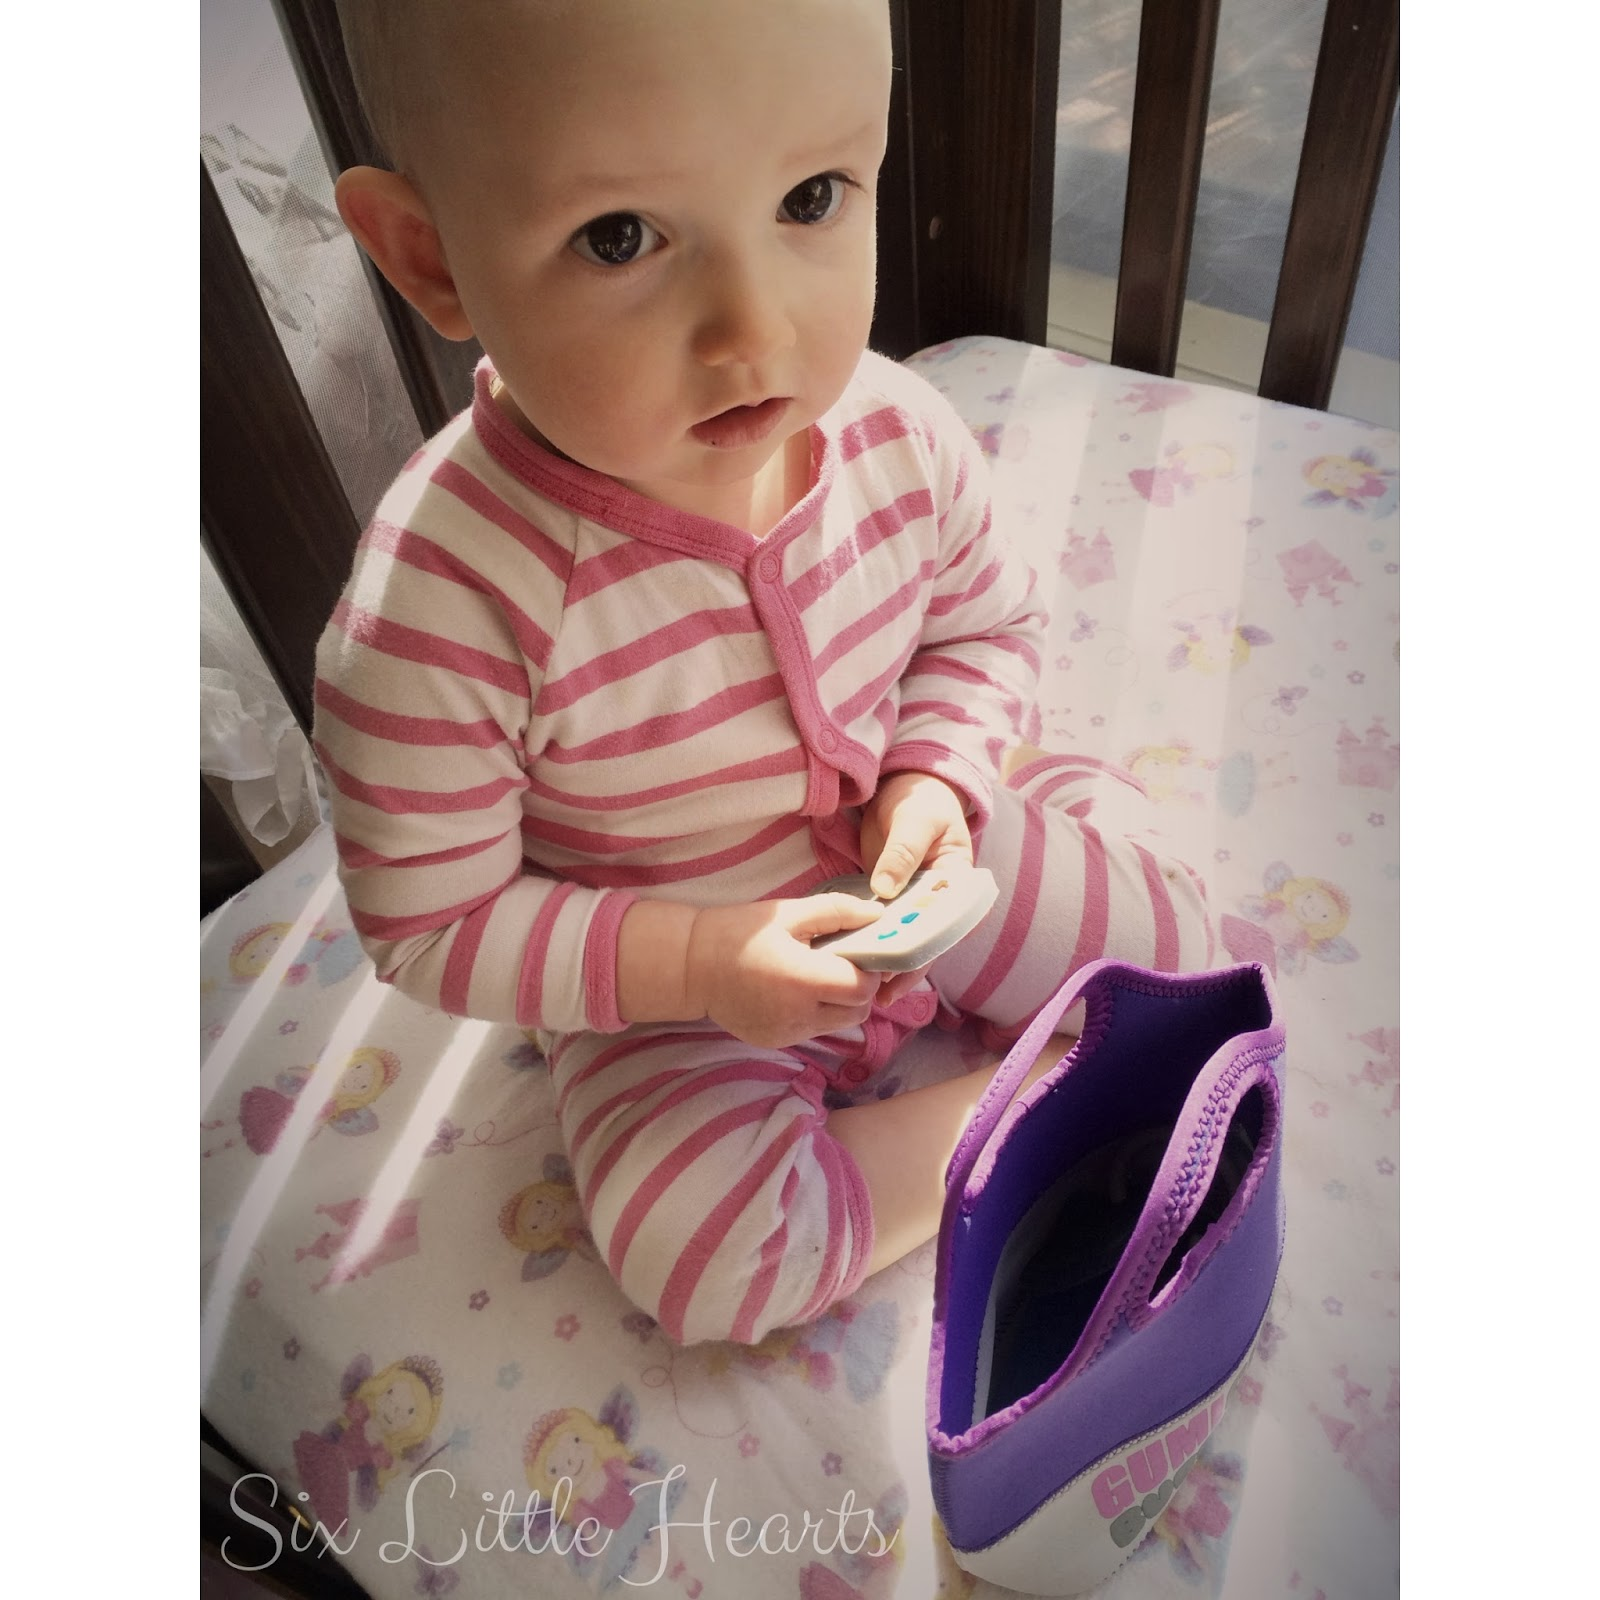 Six Little Hearts Gumigem Teething Toys The Bubba Bag